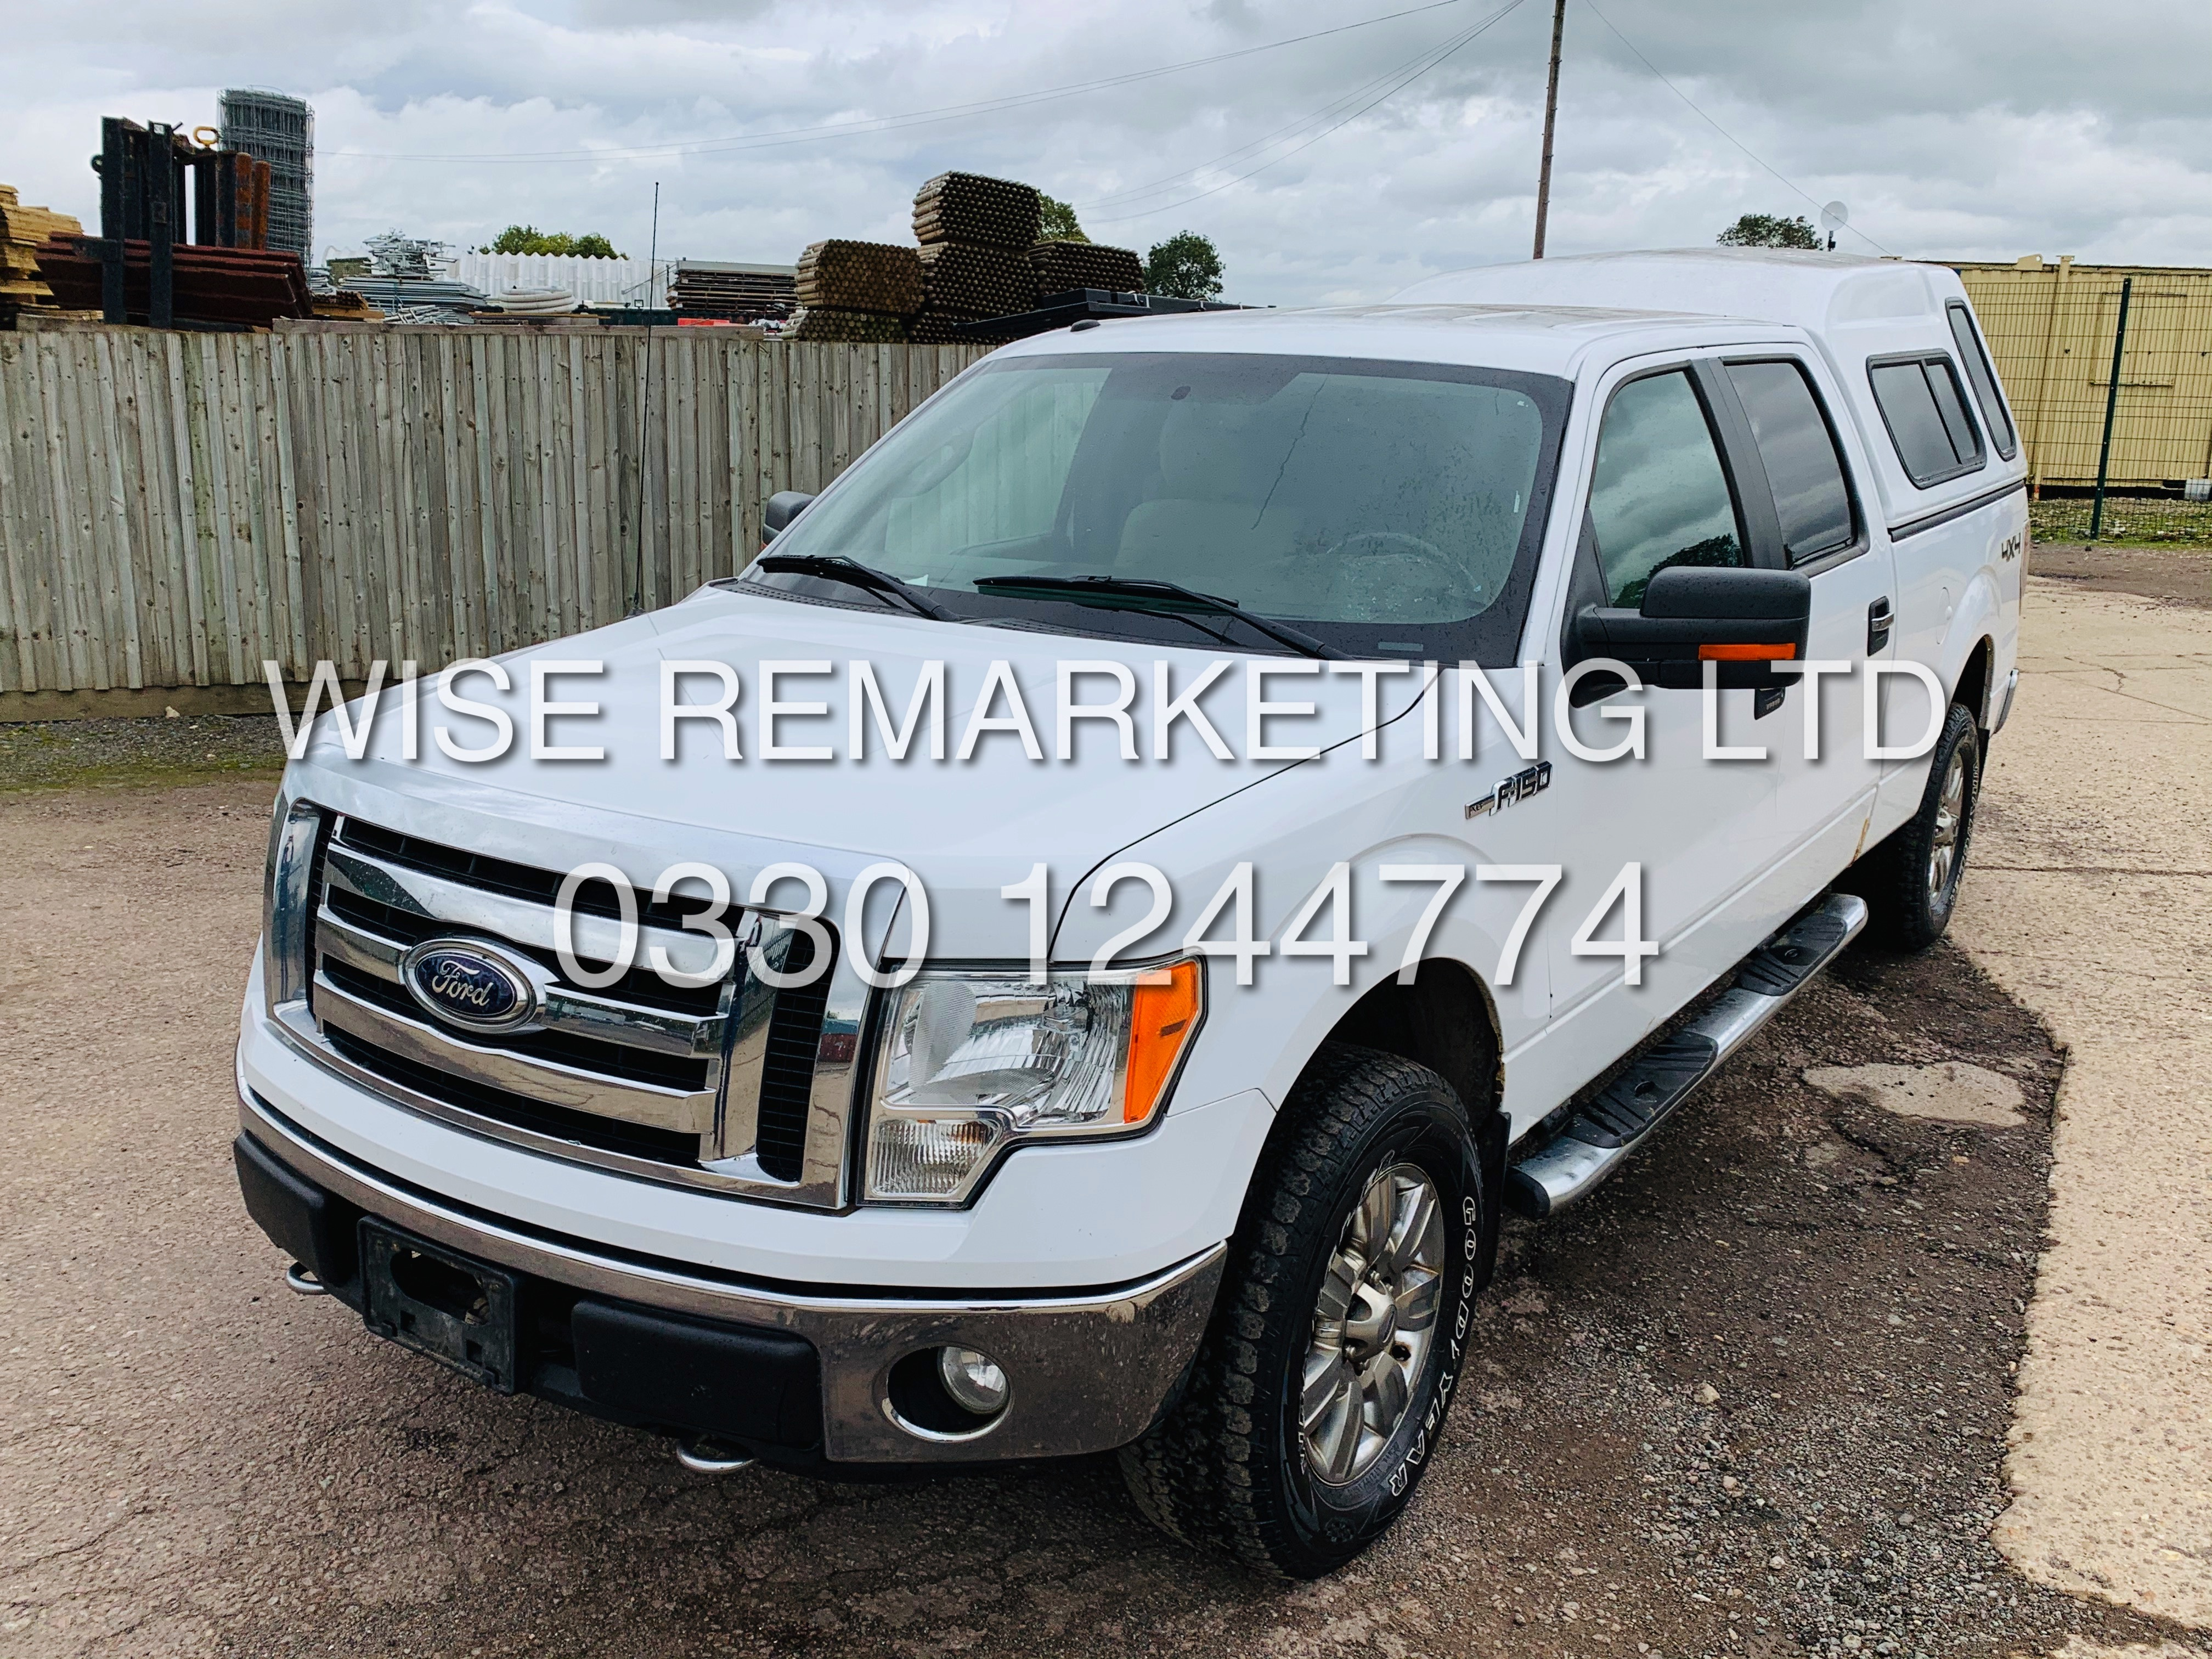 Lot 9A - FORD F-150 5.4L V8 XLT**2009**DOUBLE-CAB**FRESH IMPORT**RARE**4X4**IN WHITE**COLOUR CODED PACKAGE**